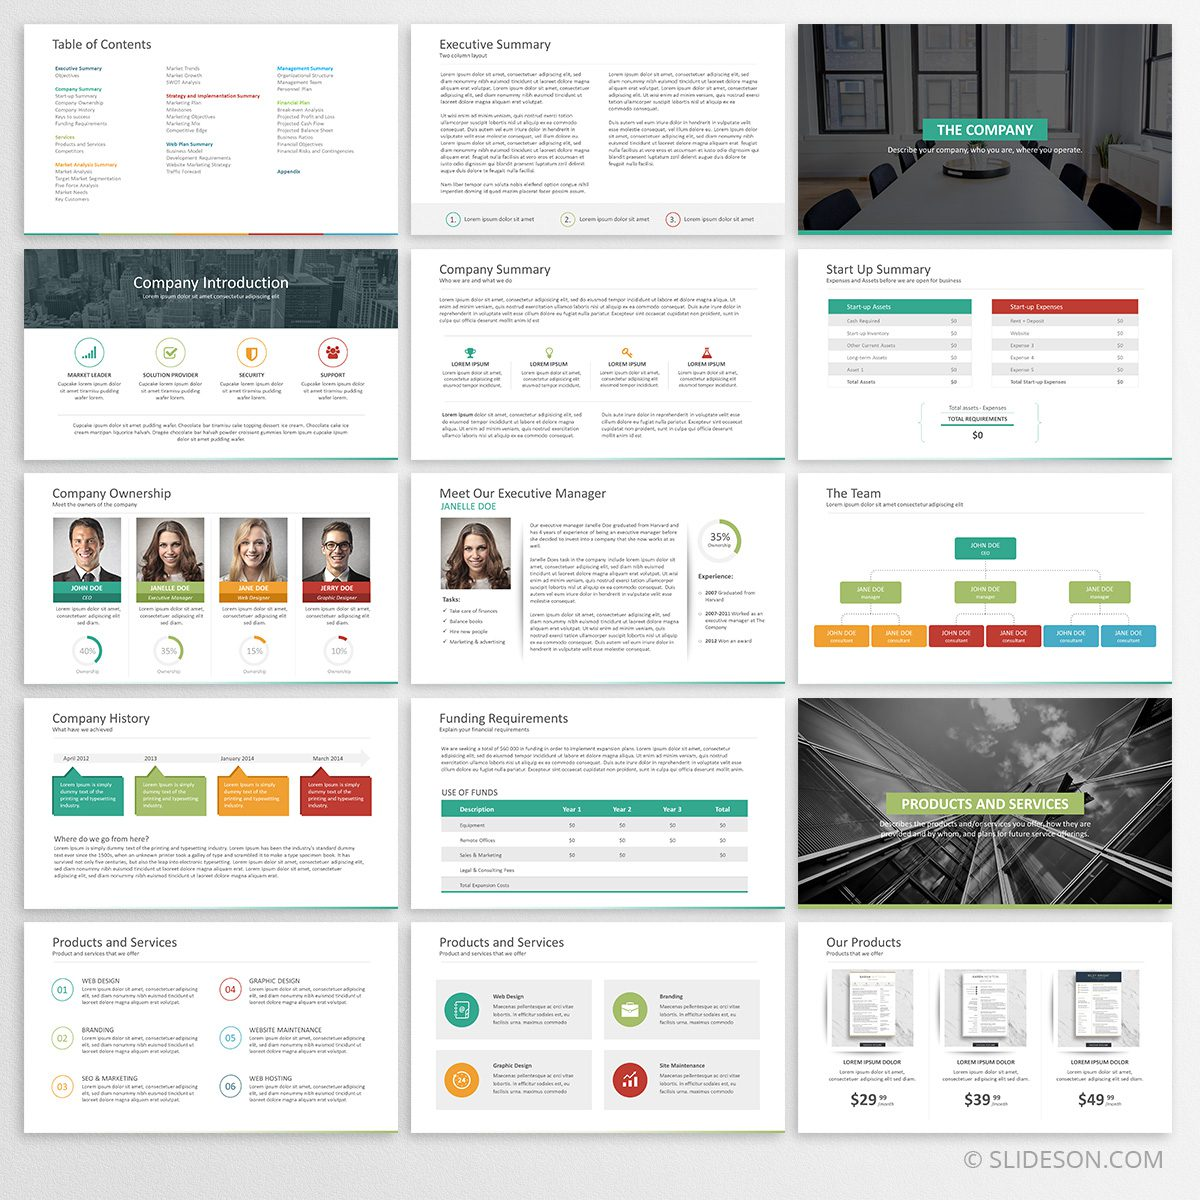 Business plan template for powerpoint slideson business plan template for powerpoint toneelgroepblik Choice Image